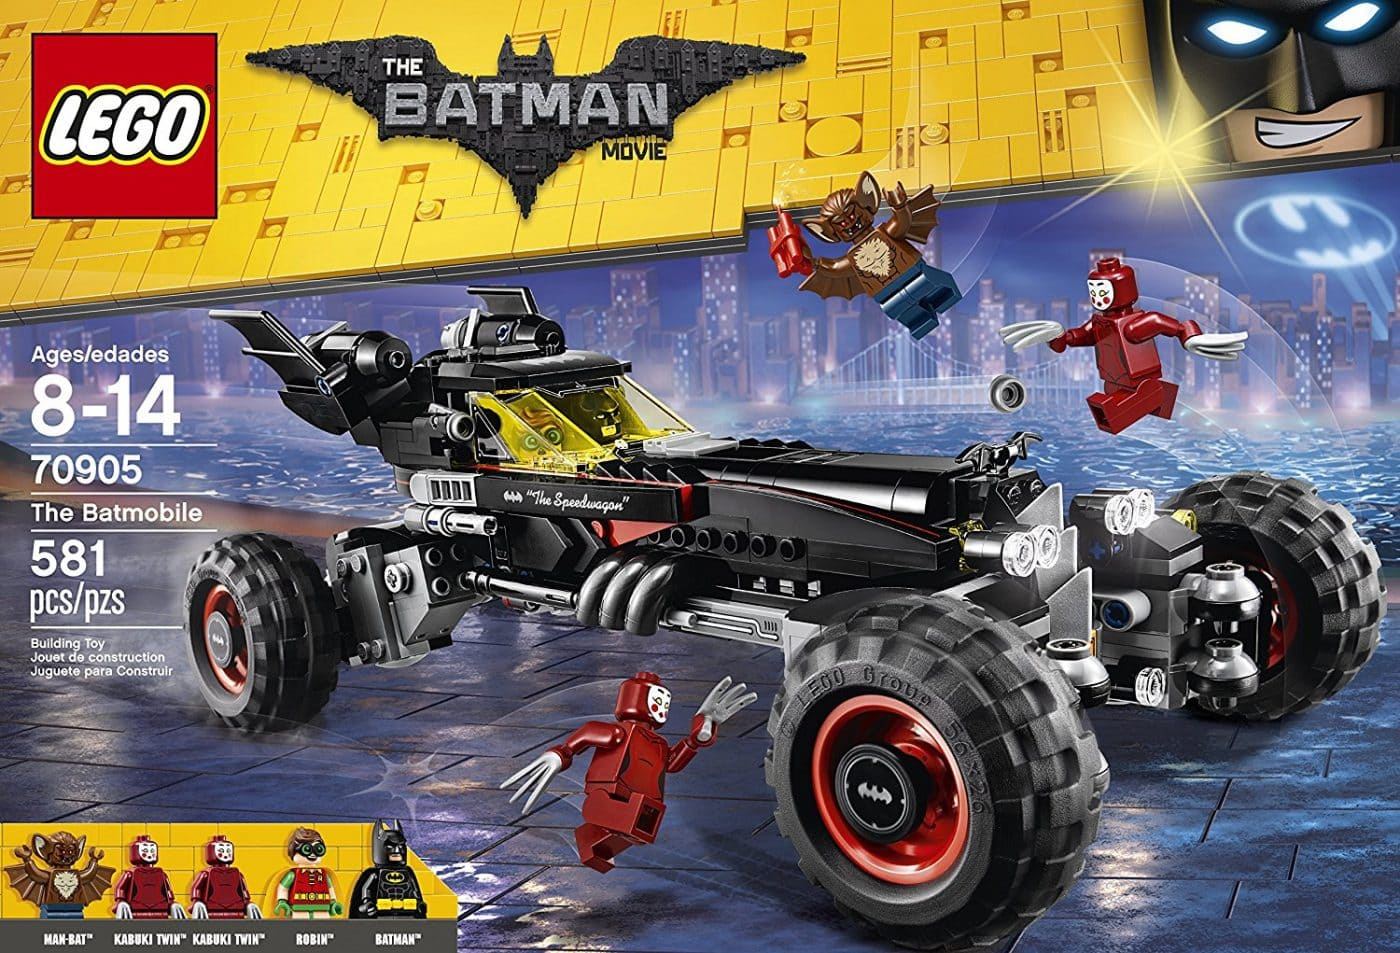 The LEGO Batman Movie Batmobile